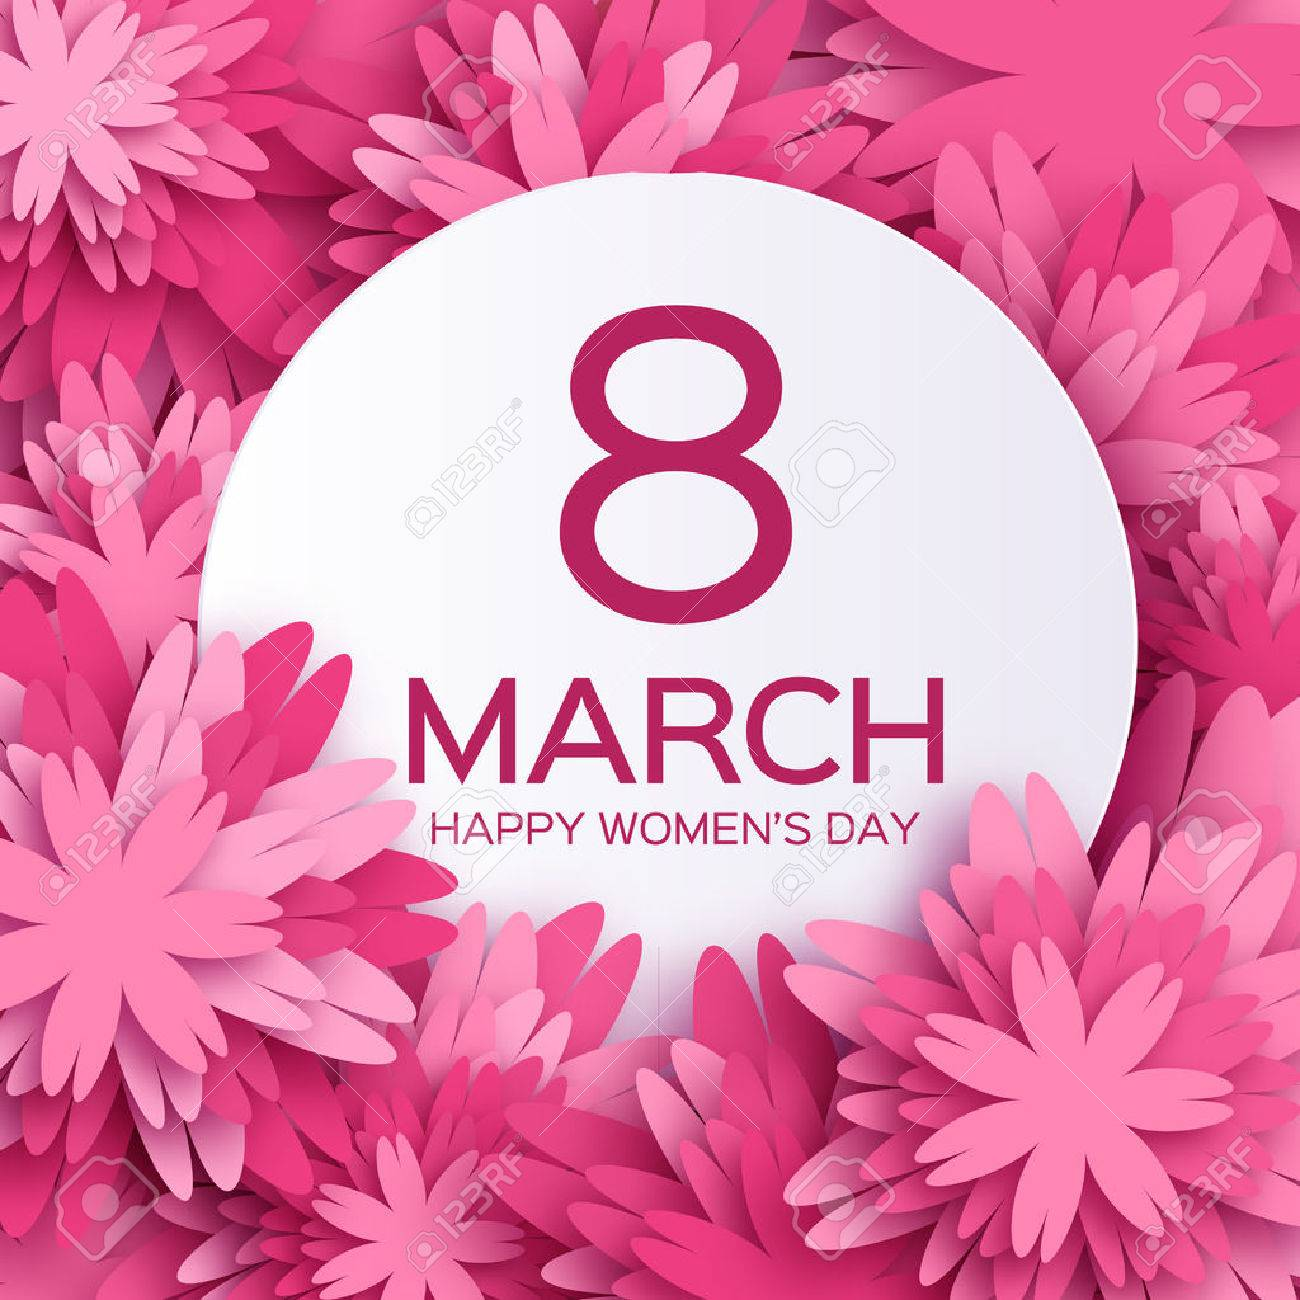 Abstract Pink Floral Greeting card - International Happy Women's Day - 8 March holiday background with paper cut Frame Flowers. - 52891245